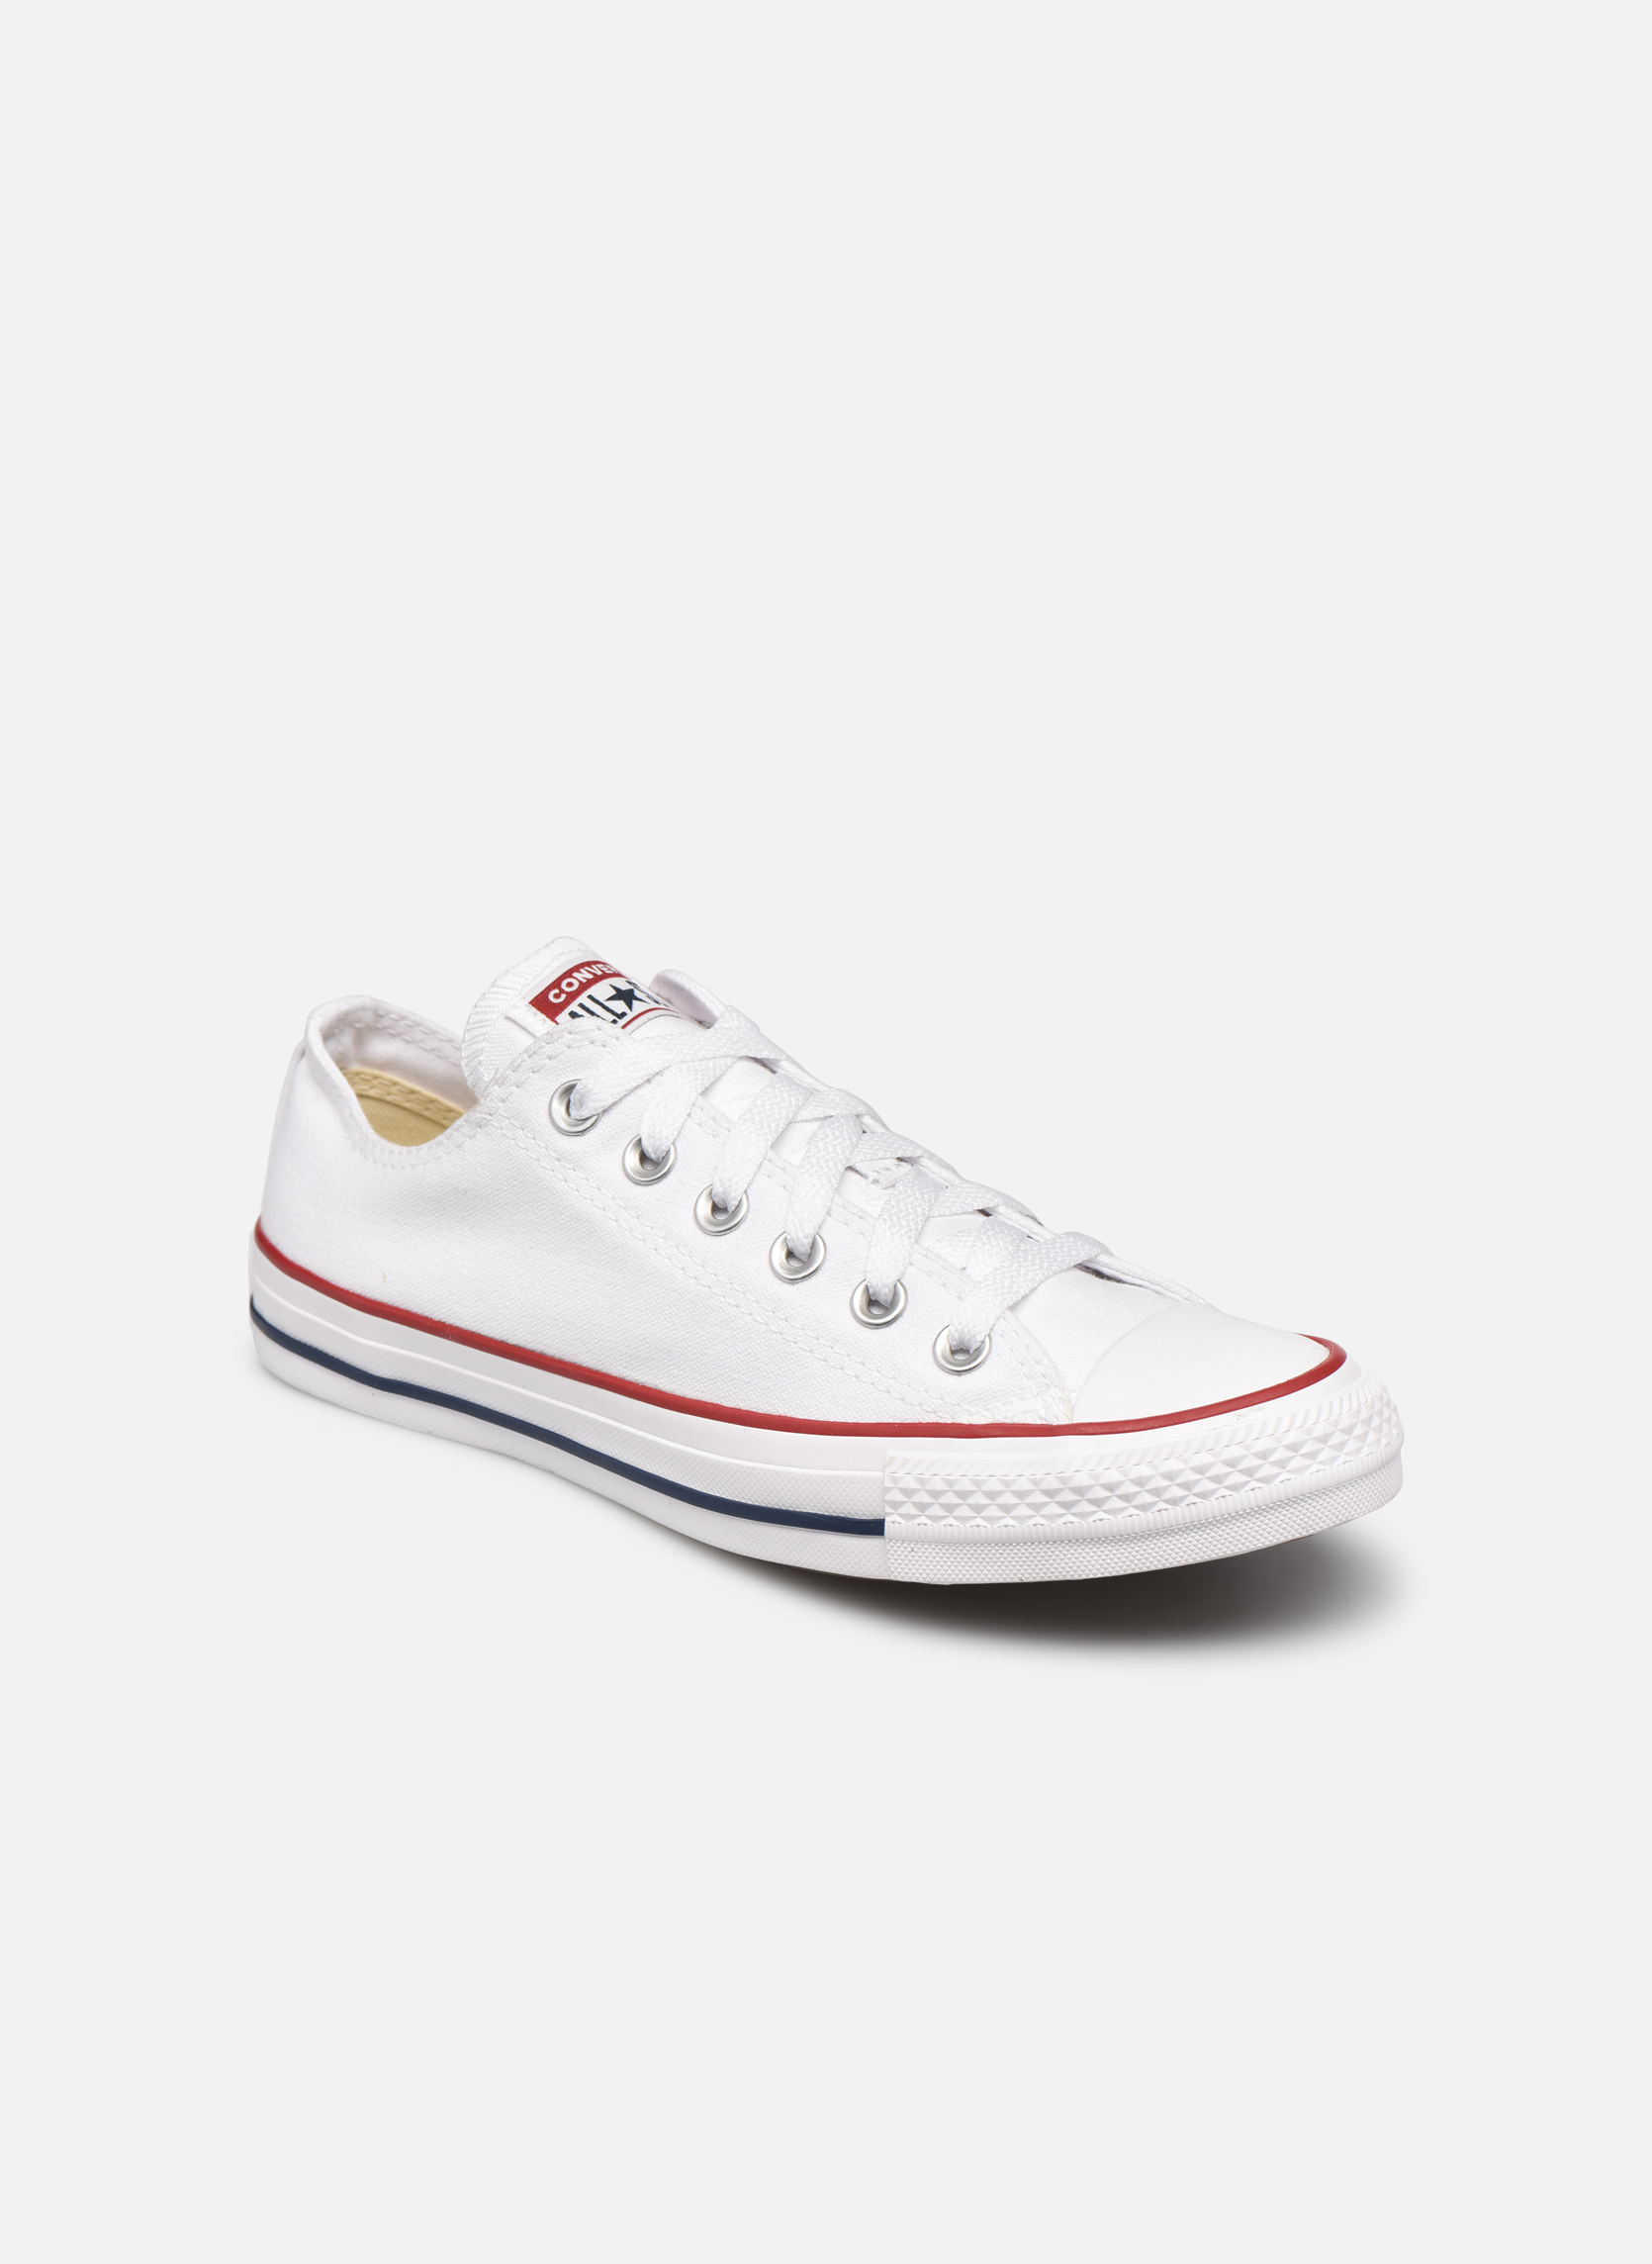 converse all star blanco